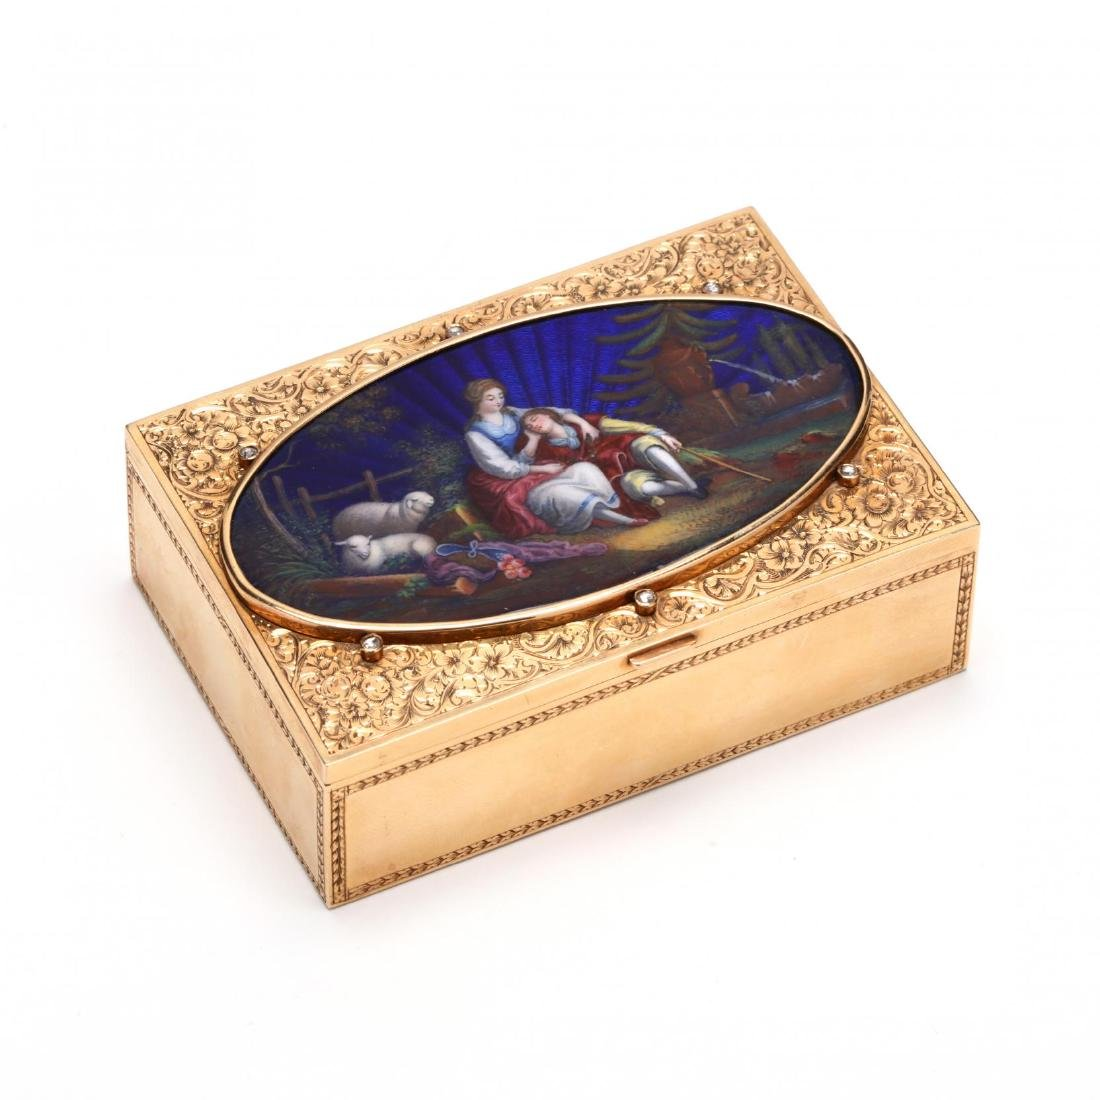 Antique French Jeweled and Enameled Gold Snuff Box